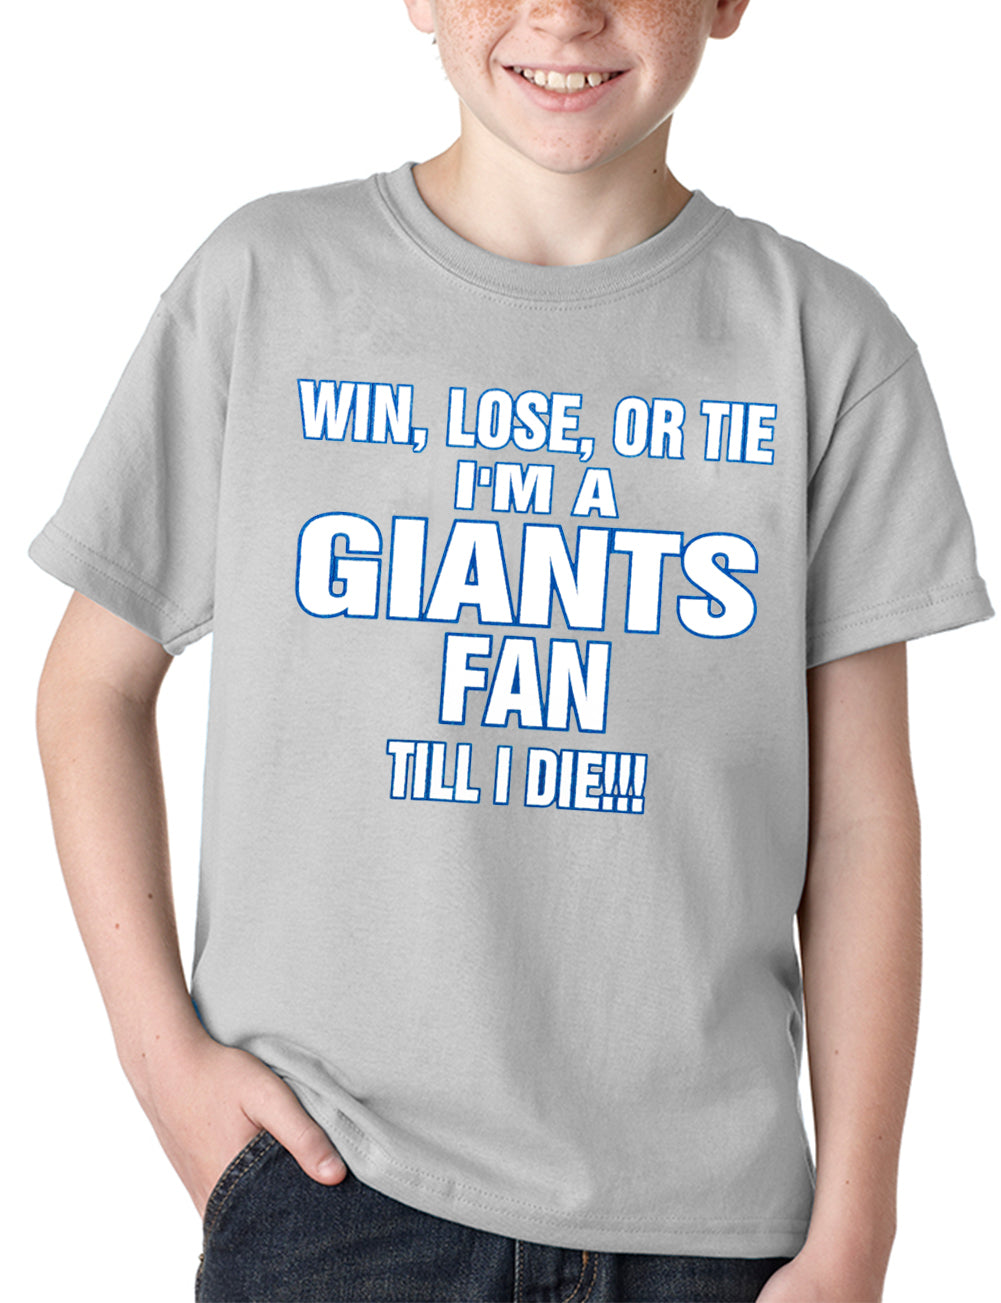 Giants Fan Till I Die Kids T-shirt